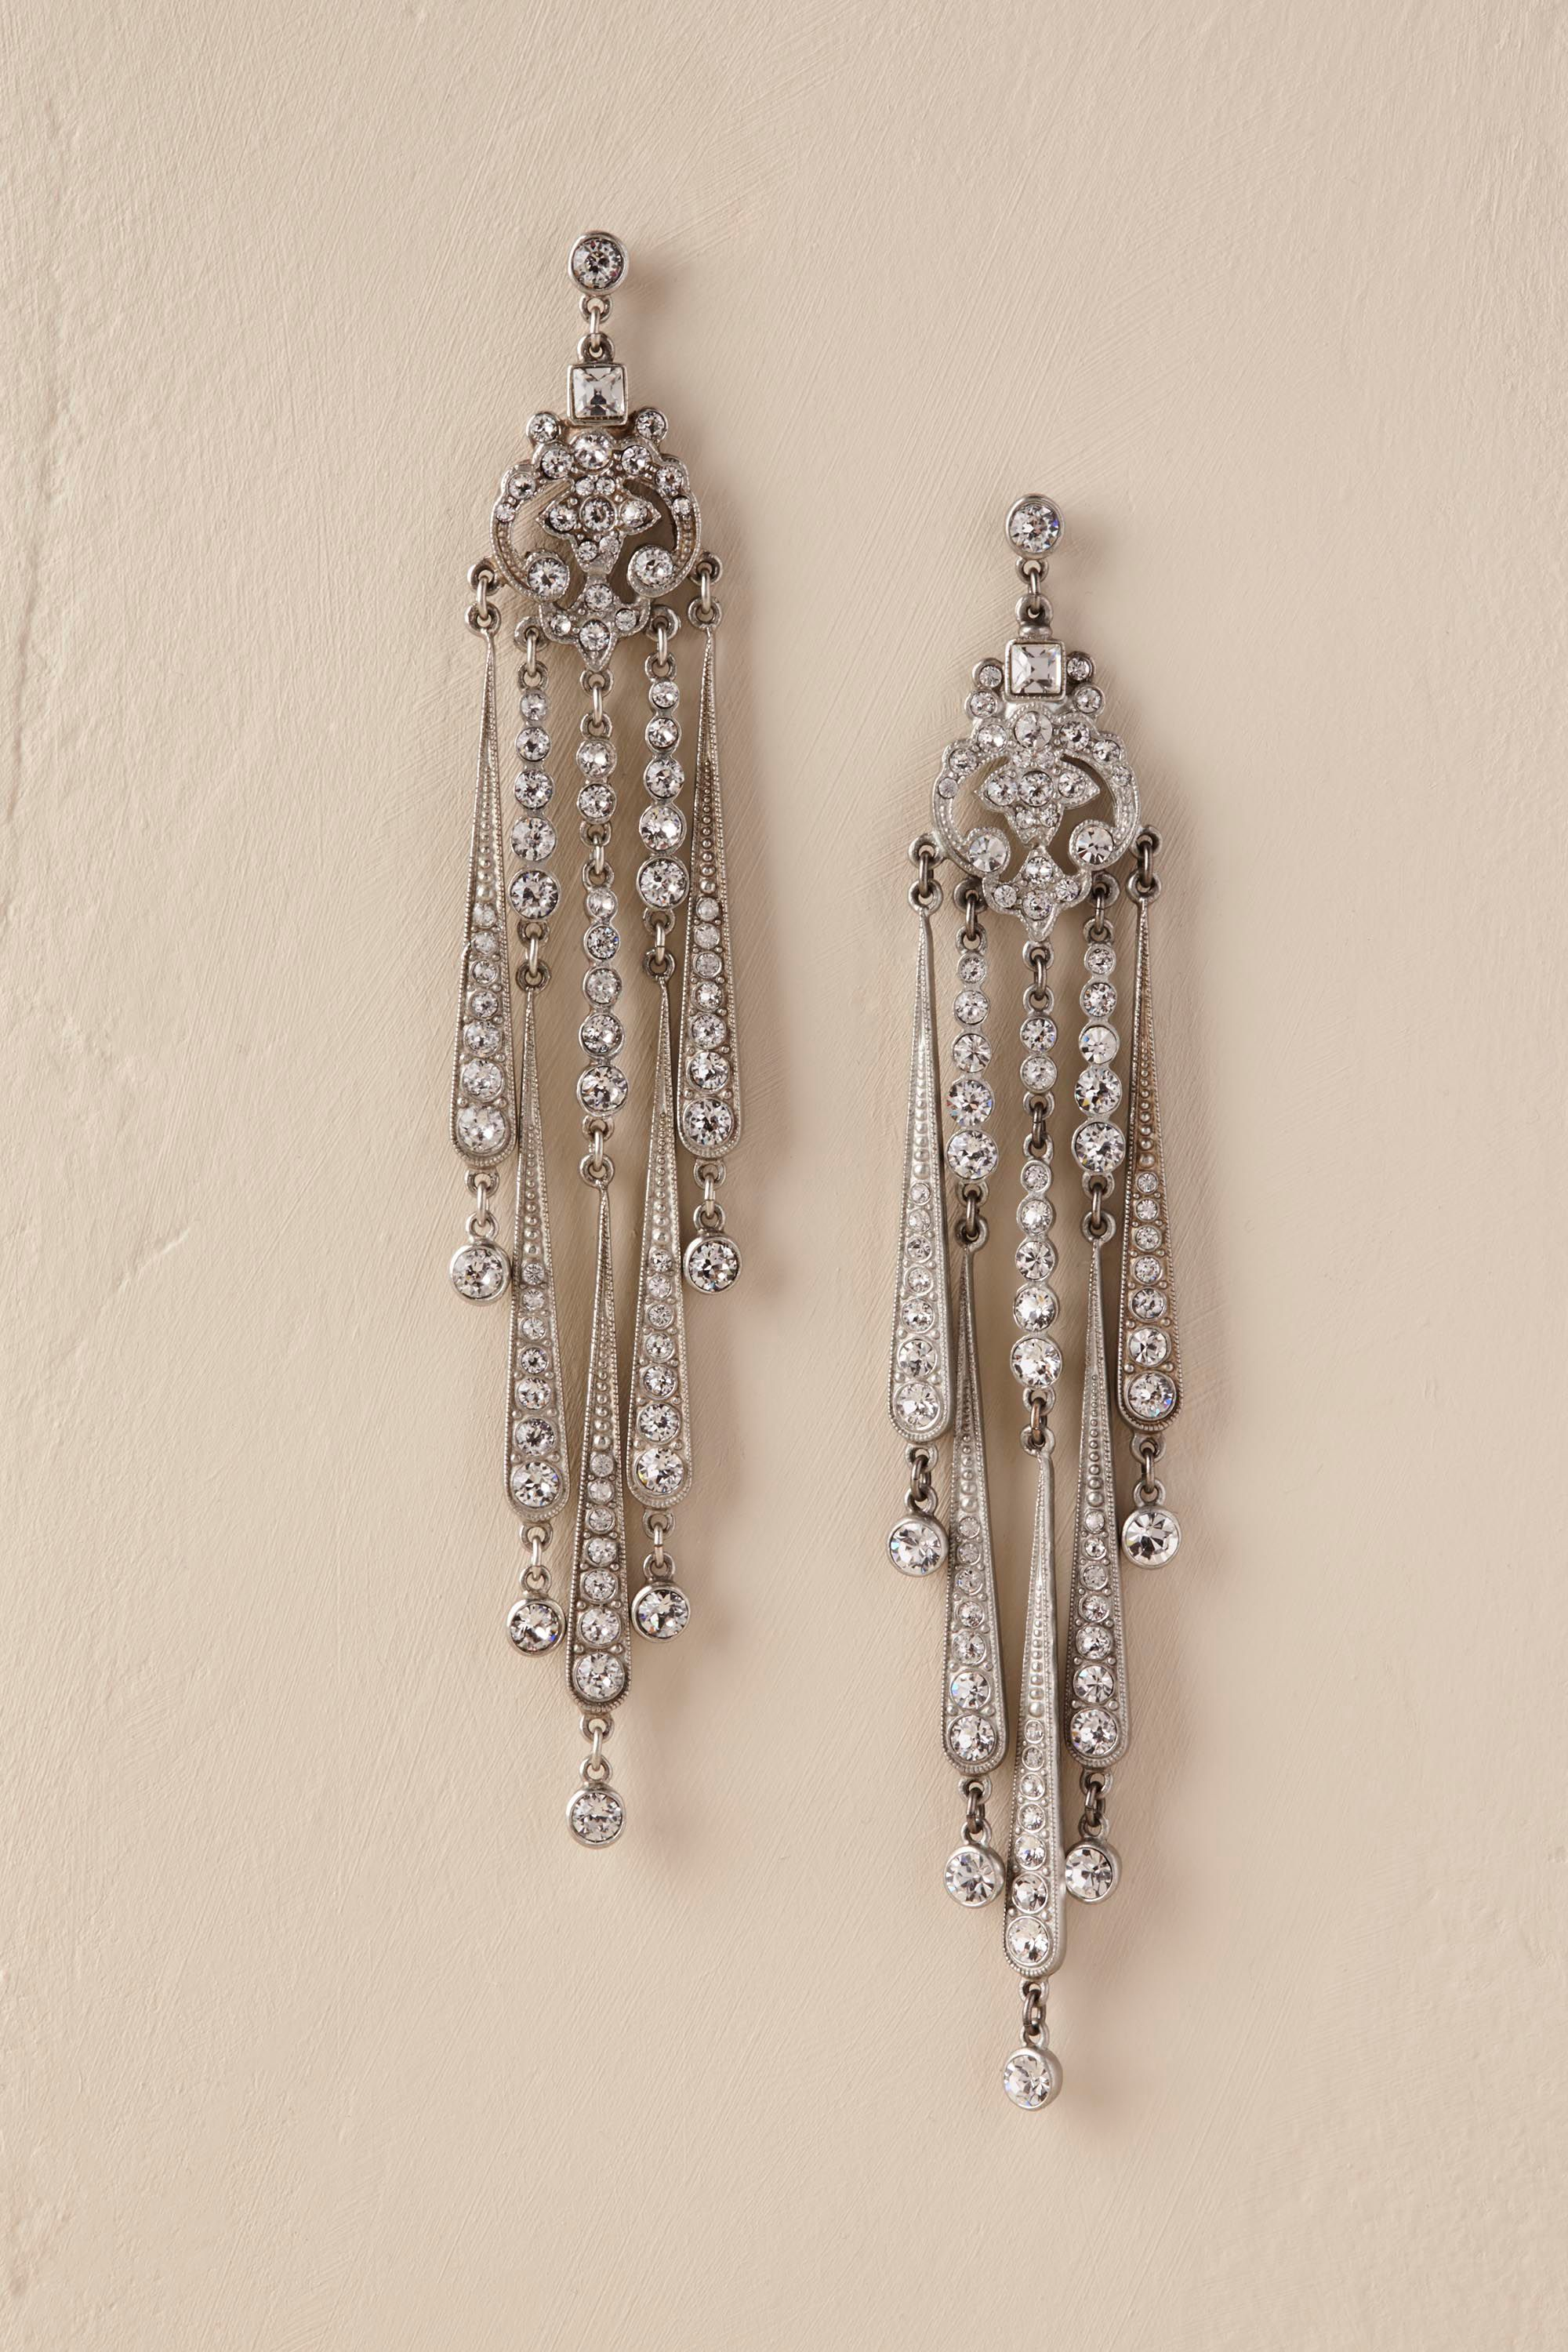 Tivoli Chandelier Earrings